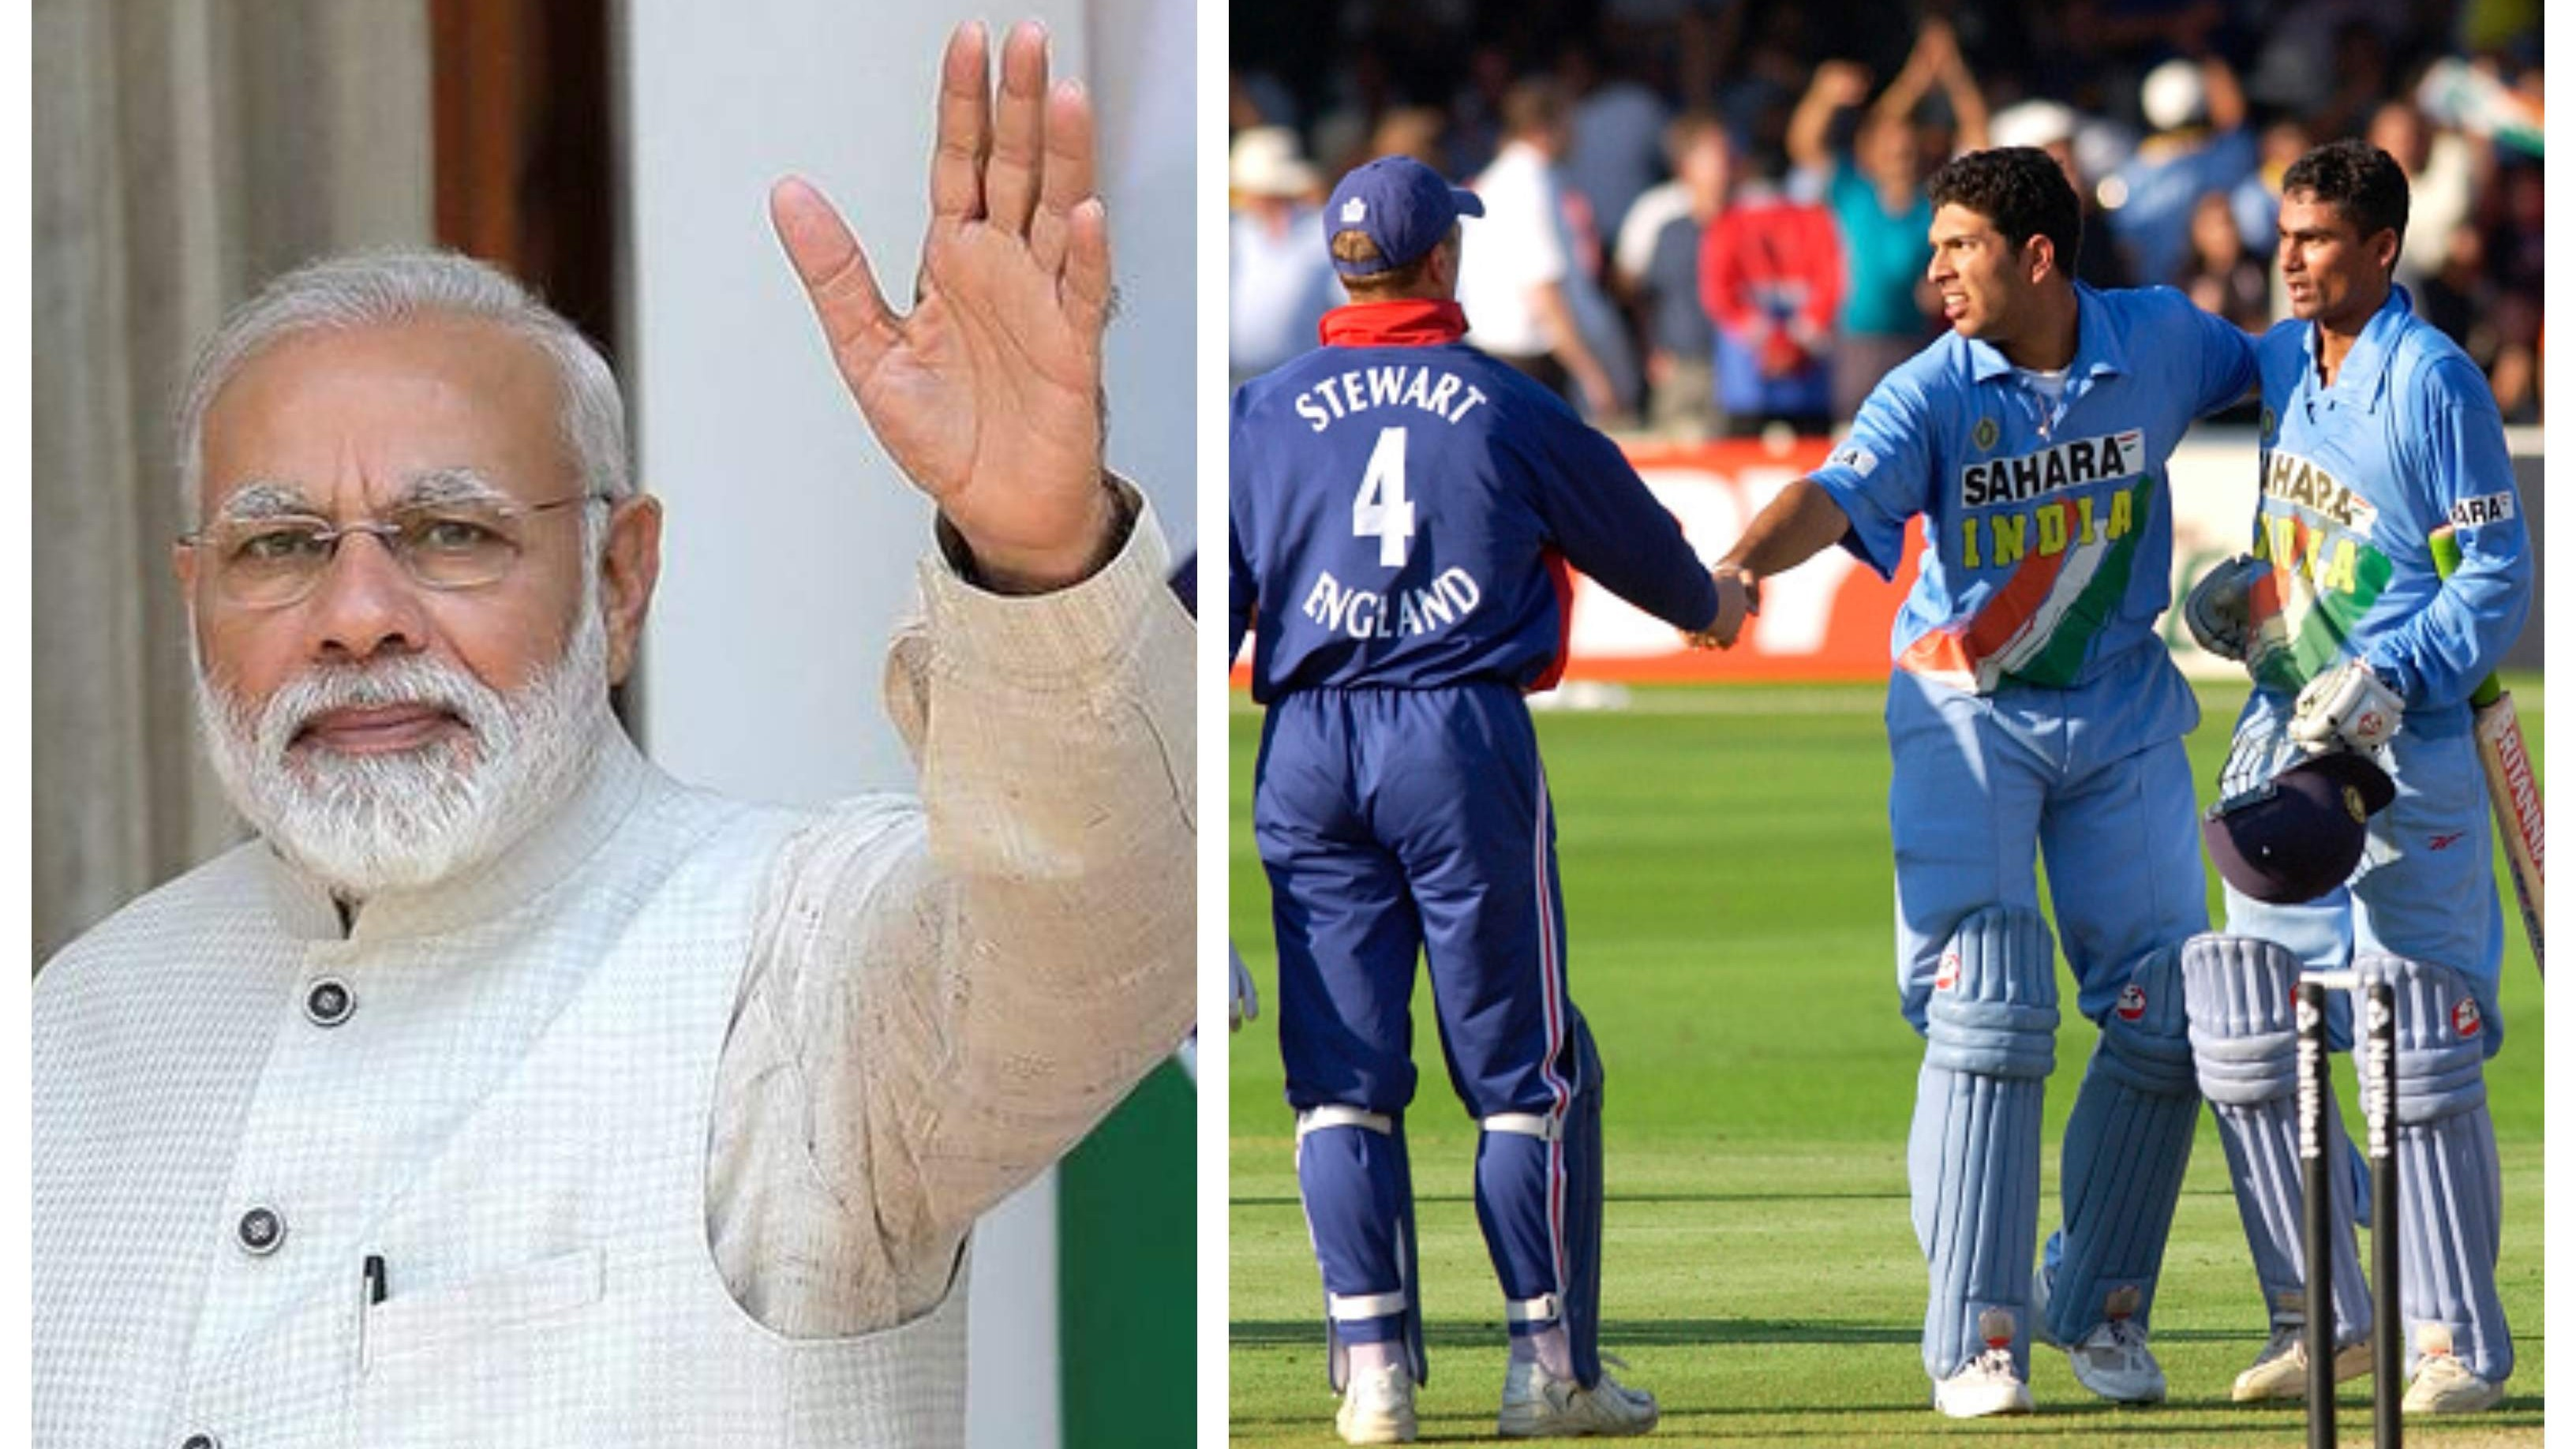 """Time for another partnership"" - PM Modi tells Kaif as India gets ready for 'Janata curfew' amid COVID-19 crisis"